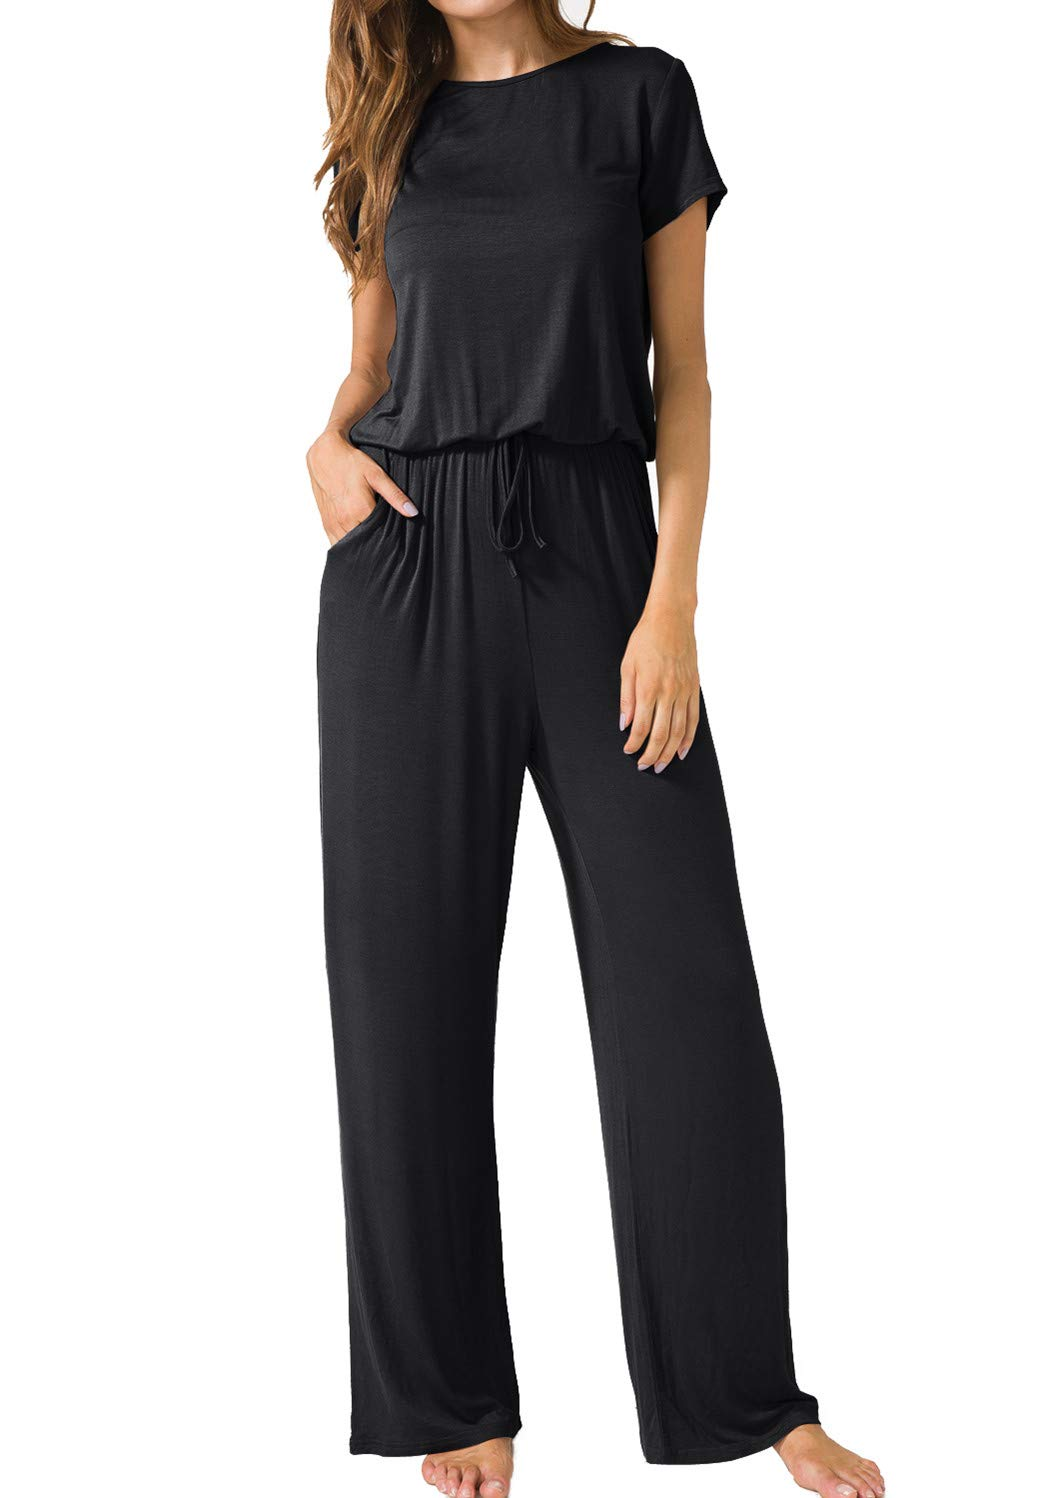 LAINAB Womens Casual Short Sleeve O Neck Wide Legs Playsuits Jumpsuits Black M by LAINAB